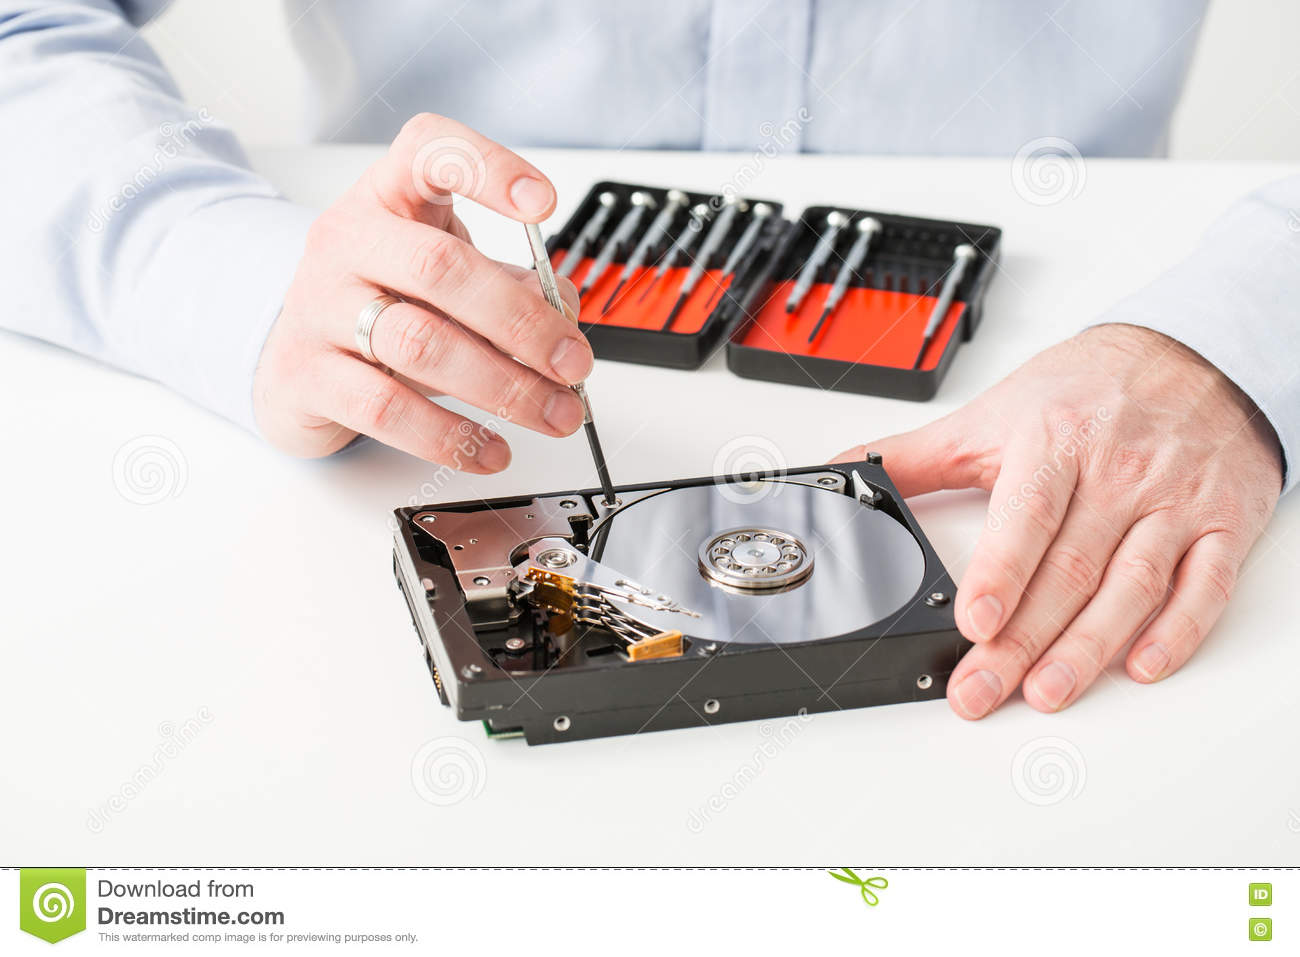 how to fix a hard-disk drive failure for a dell